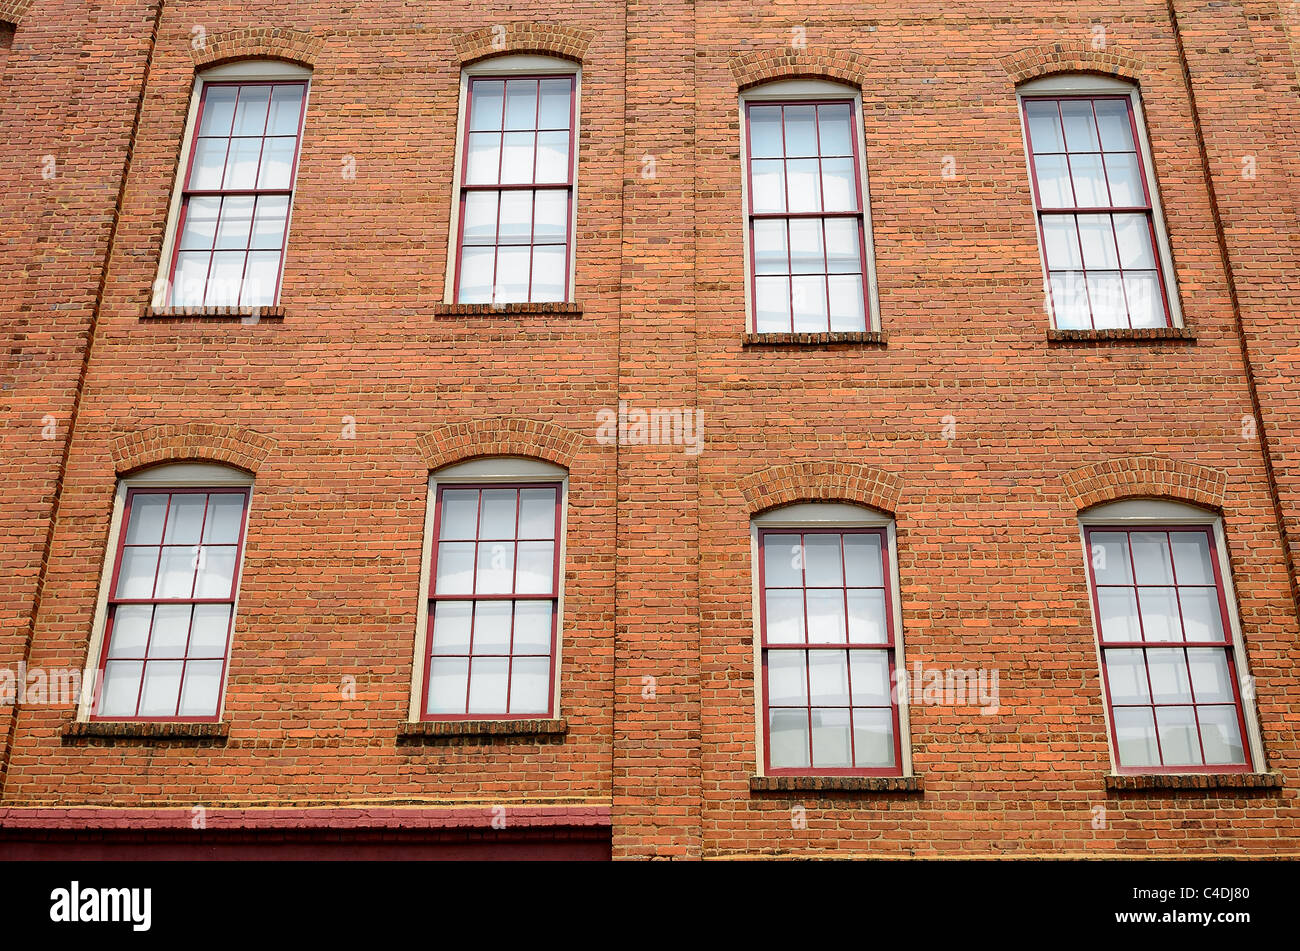 Windows on an exterior apartment buildng wall. - Stock Image